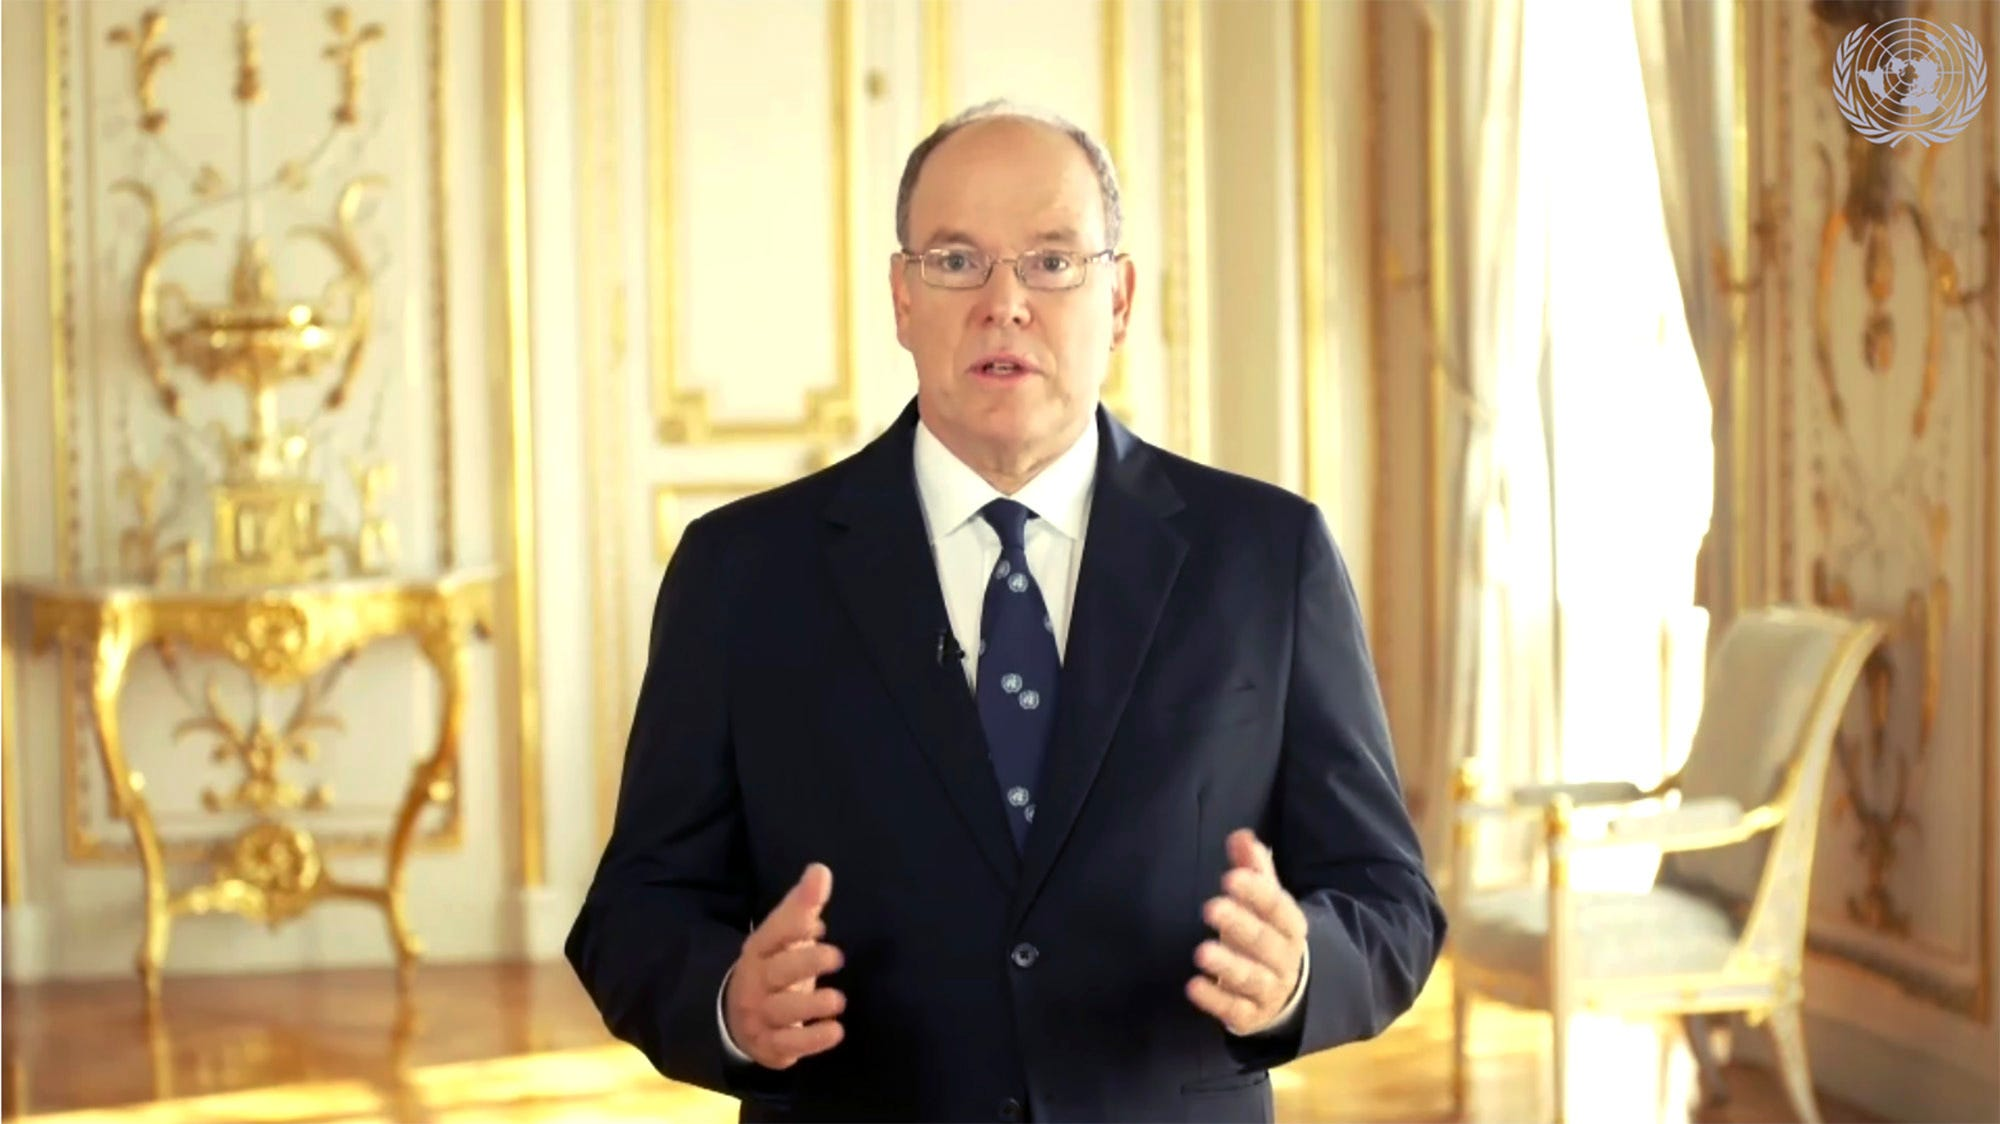 Meghan, Harry interview criticized by Prince Albert II of Monaco:  It did bother me